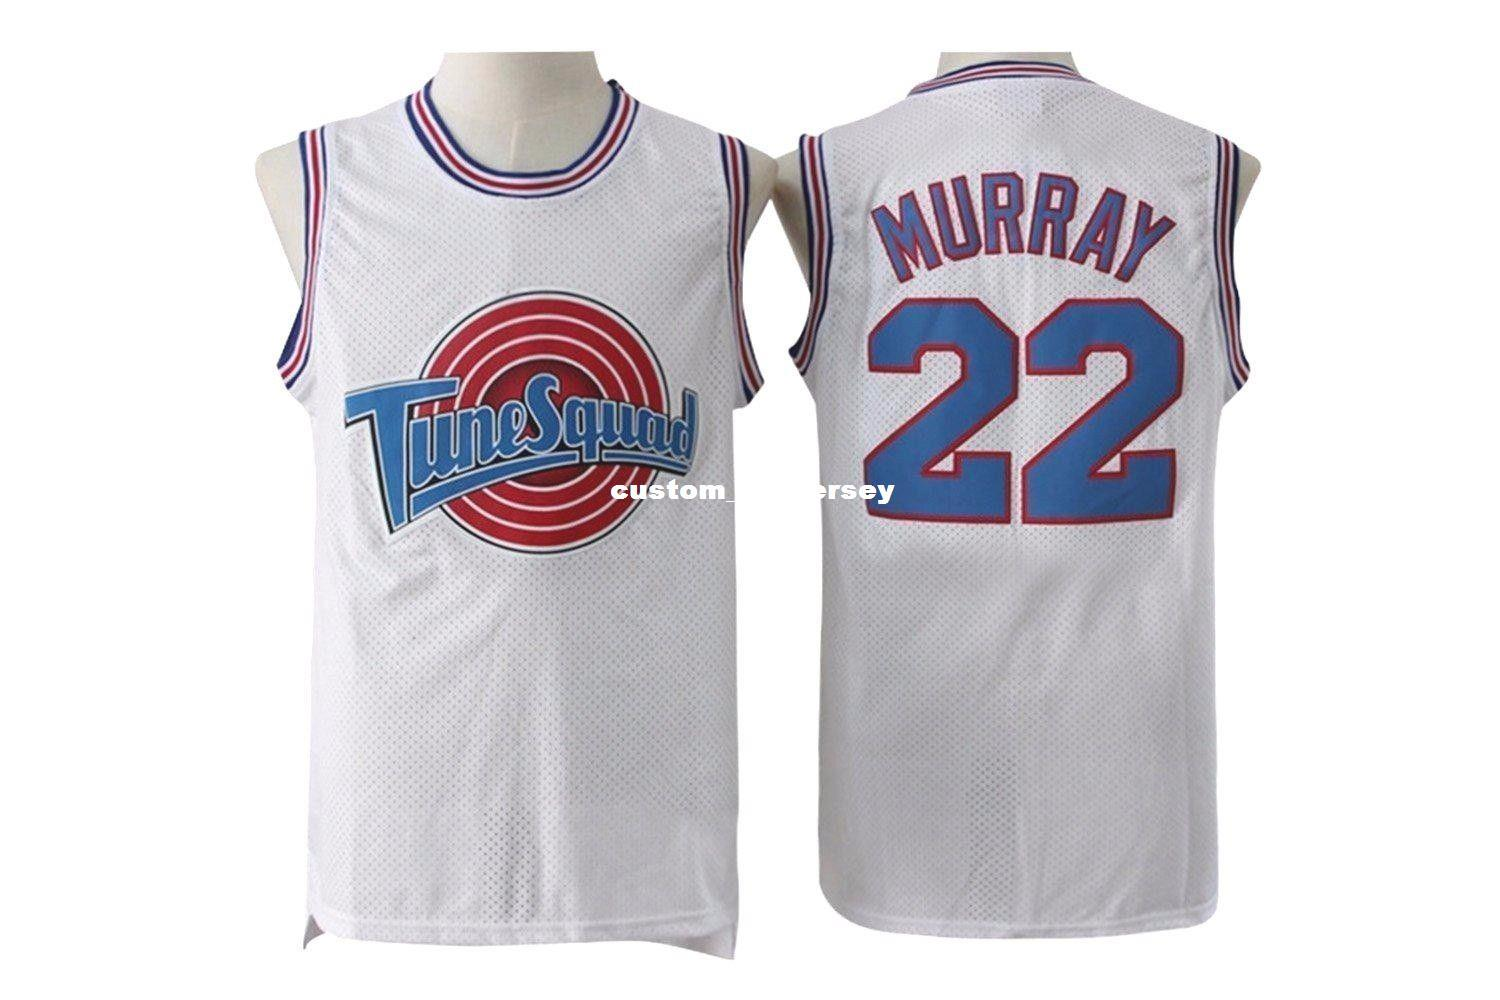 c20eff0d0e61 2019 Cheap Custom  22 Bill Murray Space Jam Tune Squad Basketball Jersey  White Stitched Customize Any Number Name MEN WOMEN YOUTH XS 5XL From ...